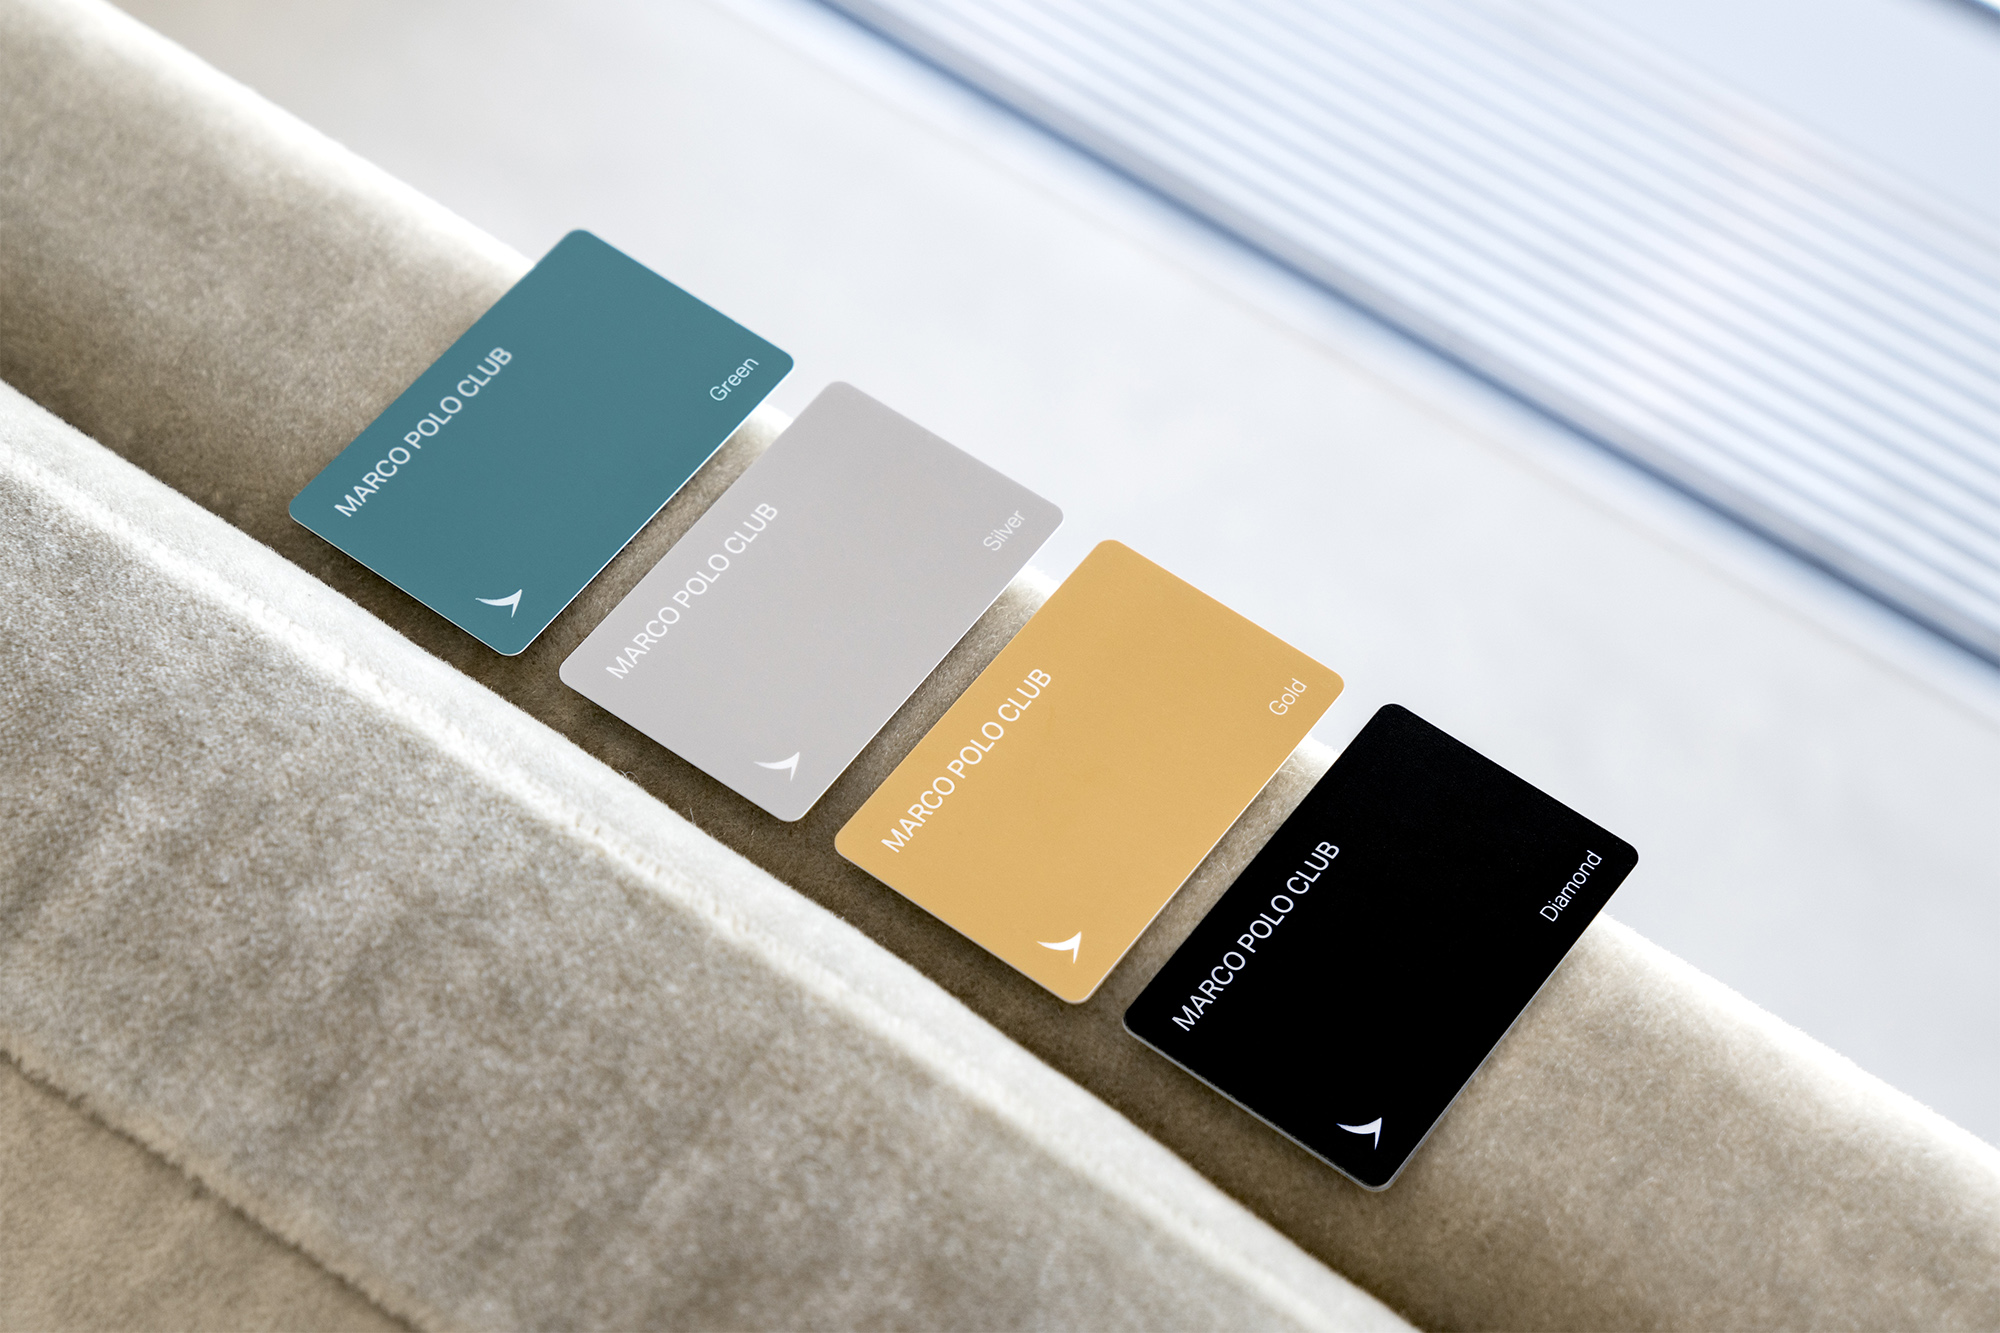 Marco Polo Cards (Cathay Pacific)